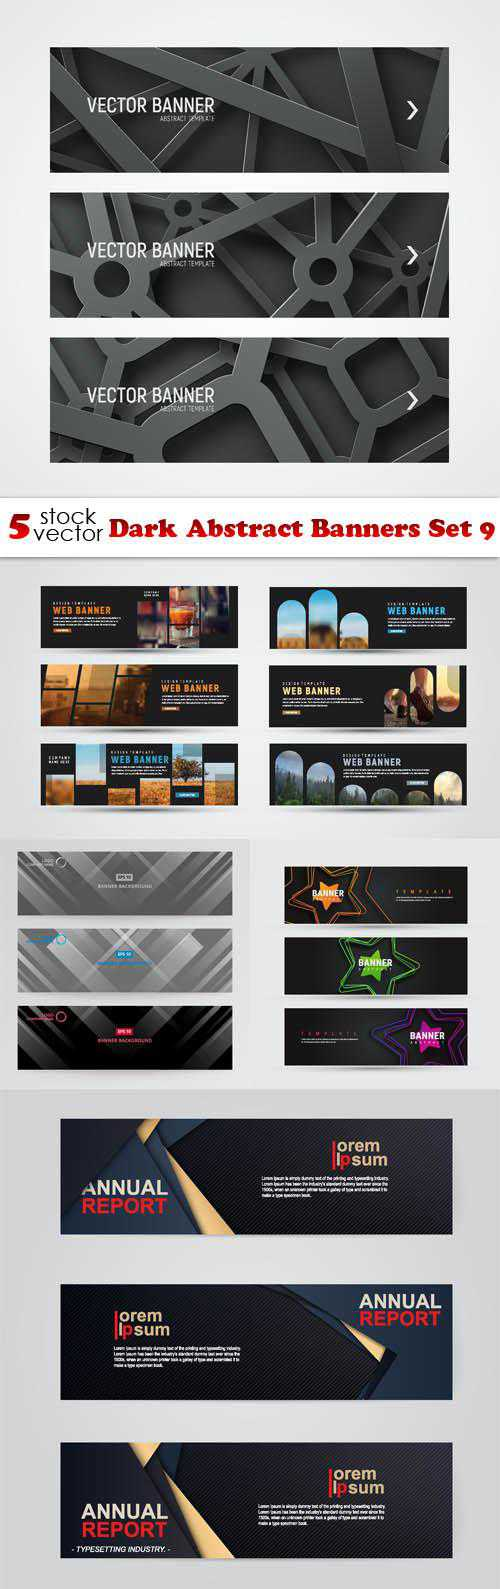 Dark Abstract Banners Set 9